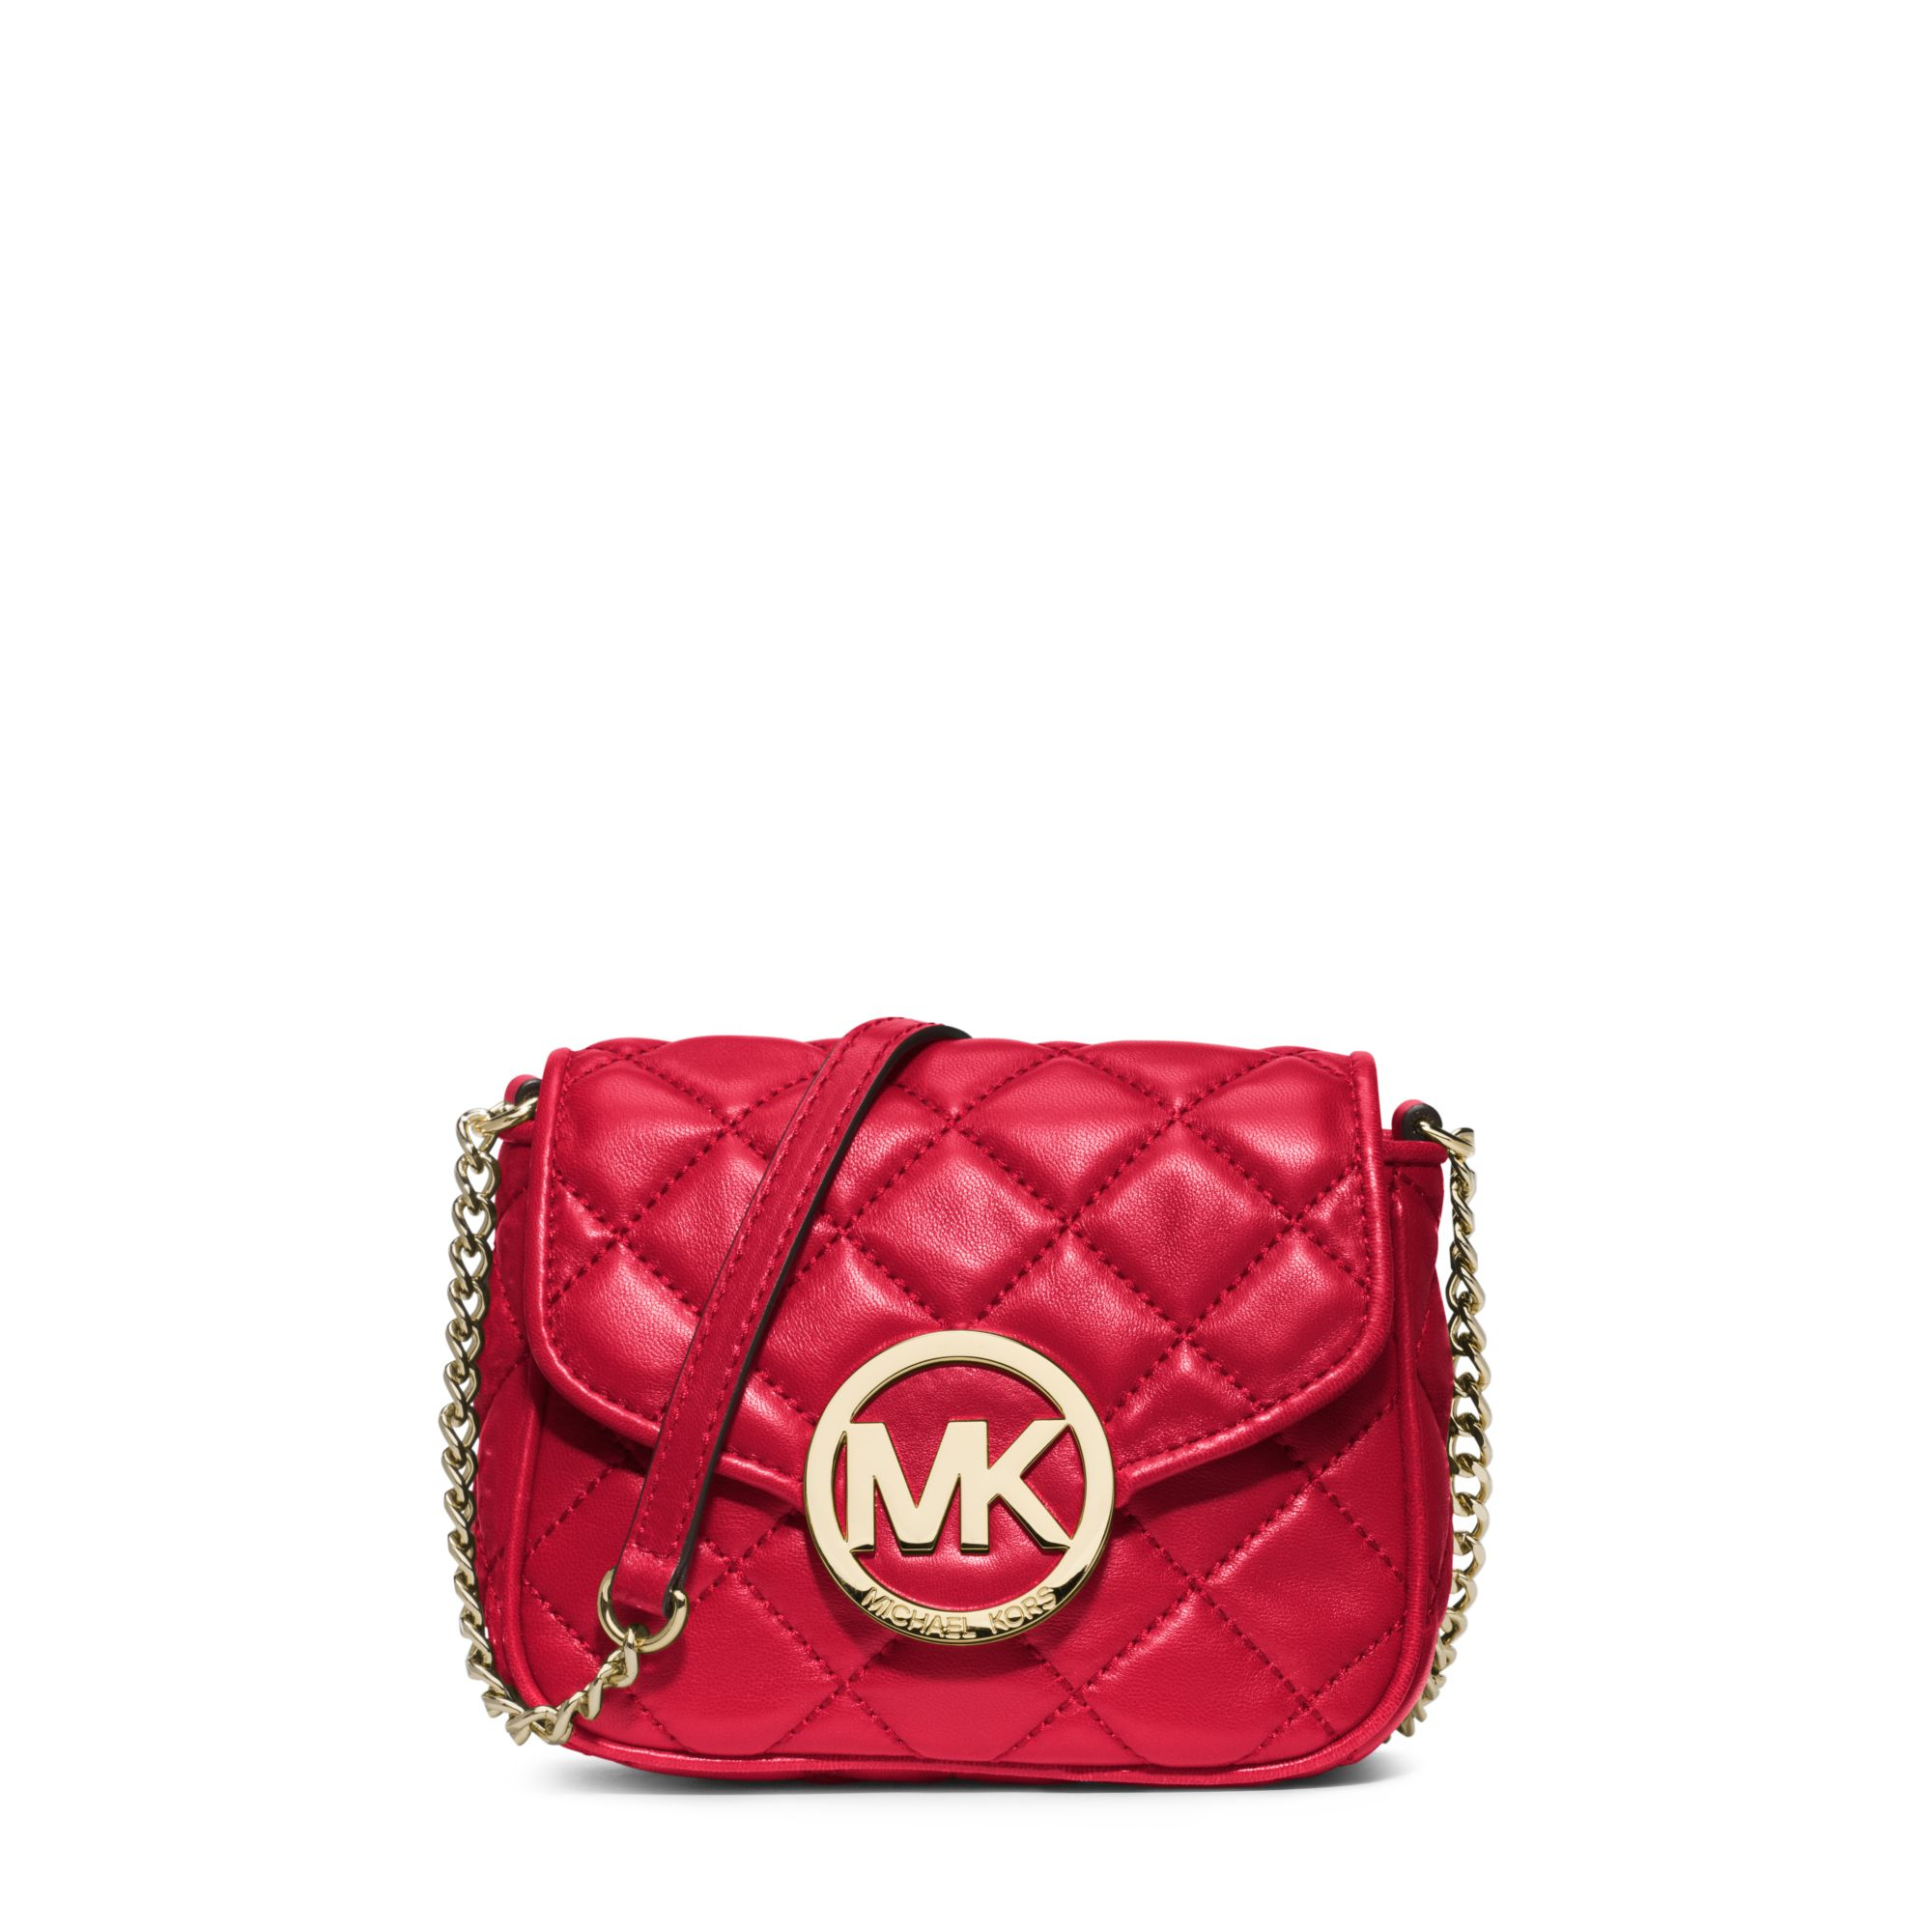 lyst michael kors fulton quilted leather crossbody in red. Black Bedroom Furniture Sets. Home Design Ideas